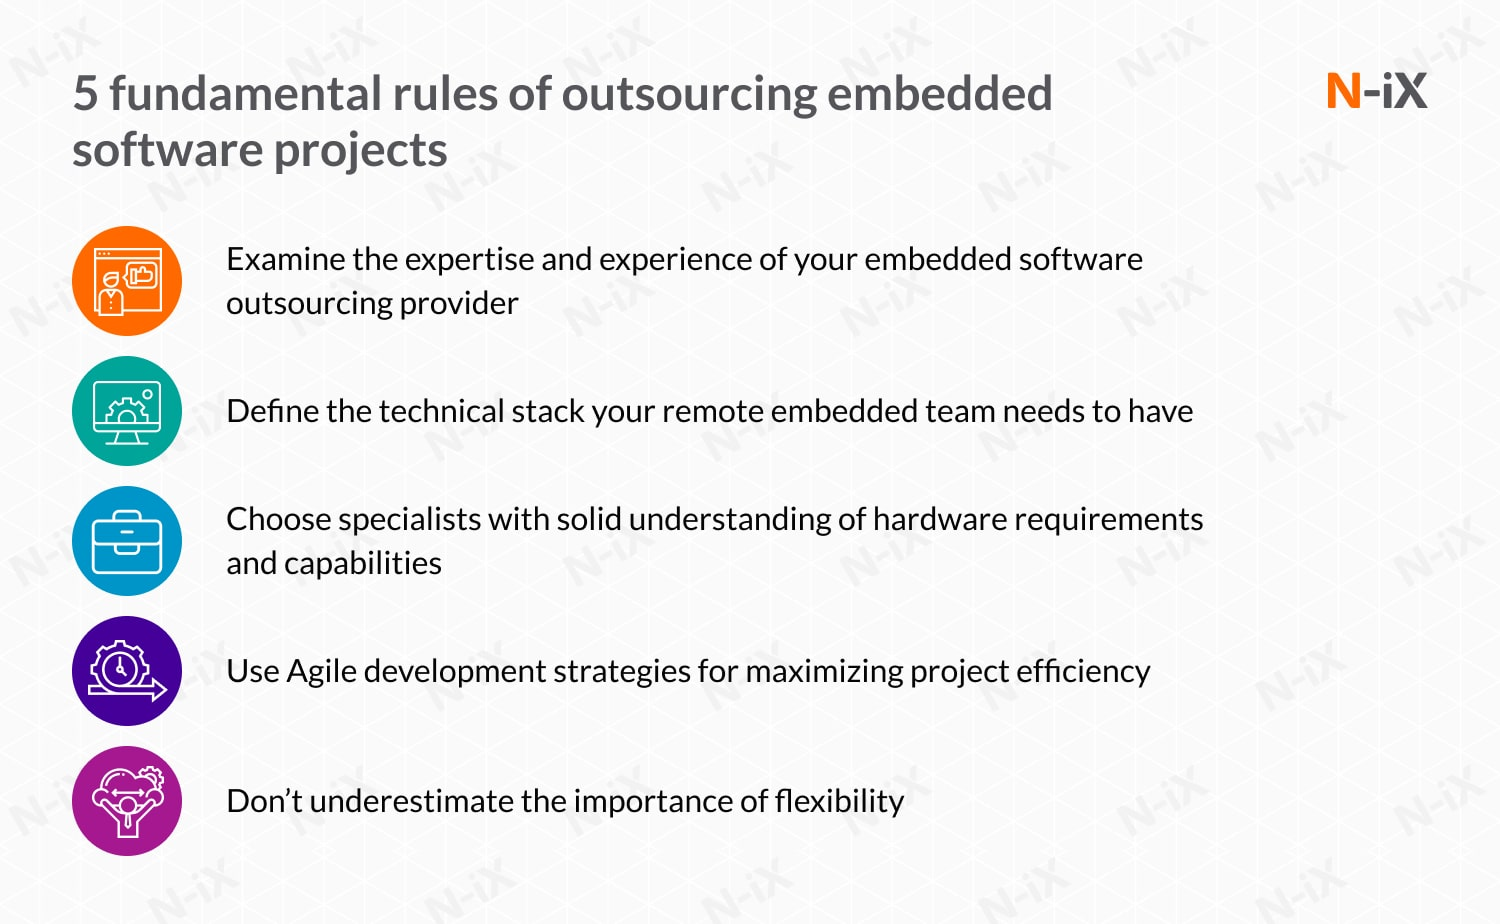 embedded software development outsourcing: key rules